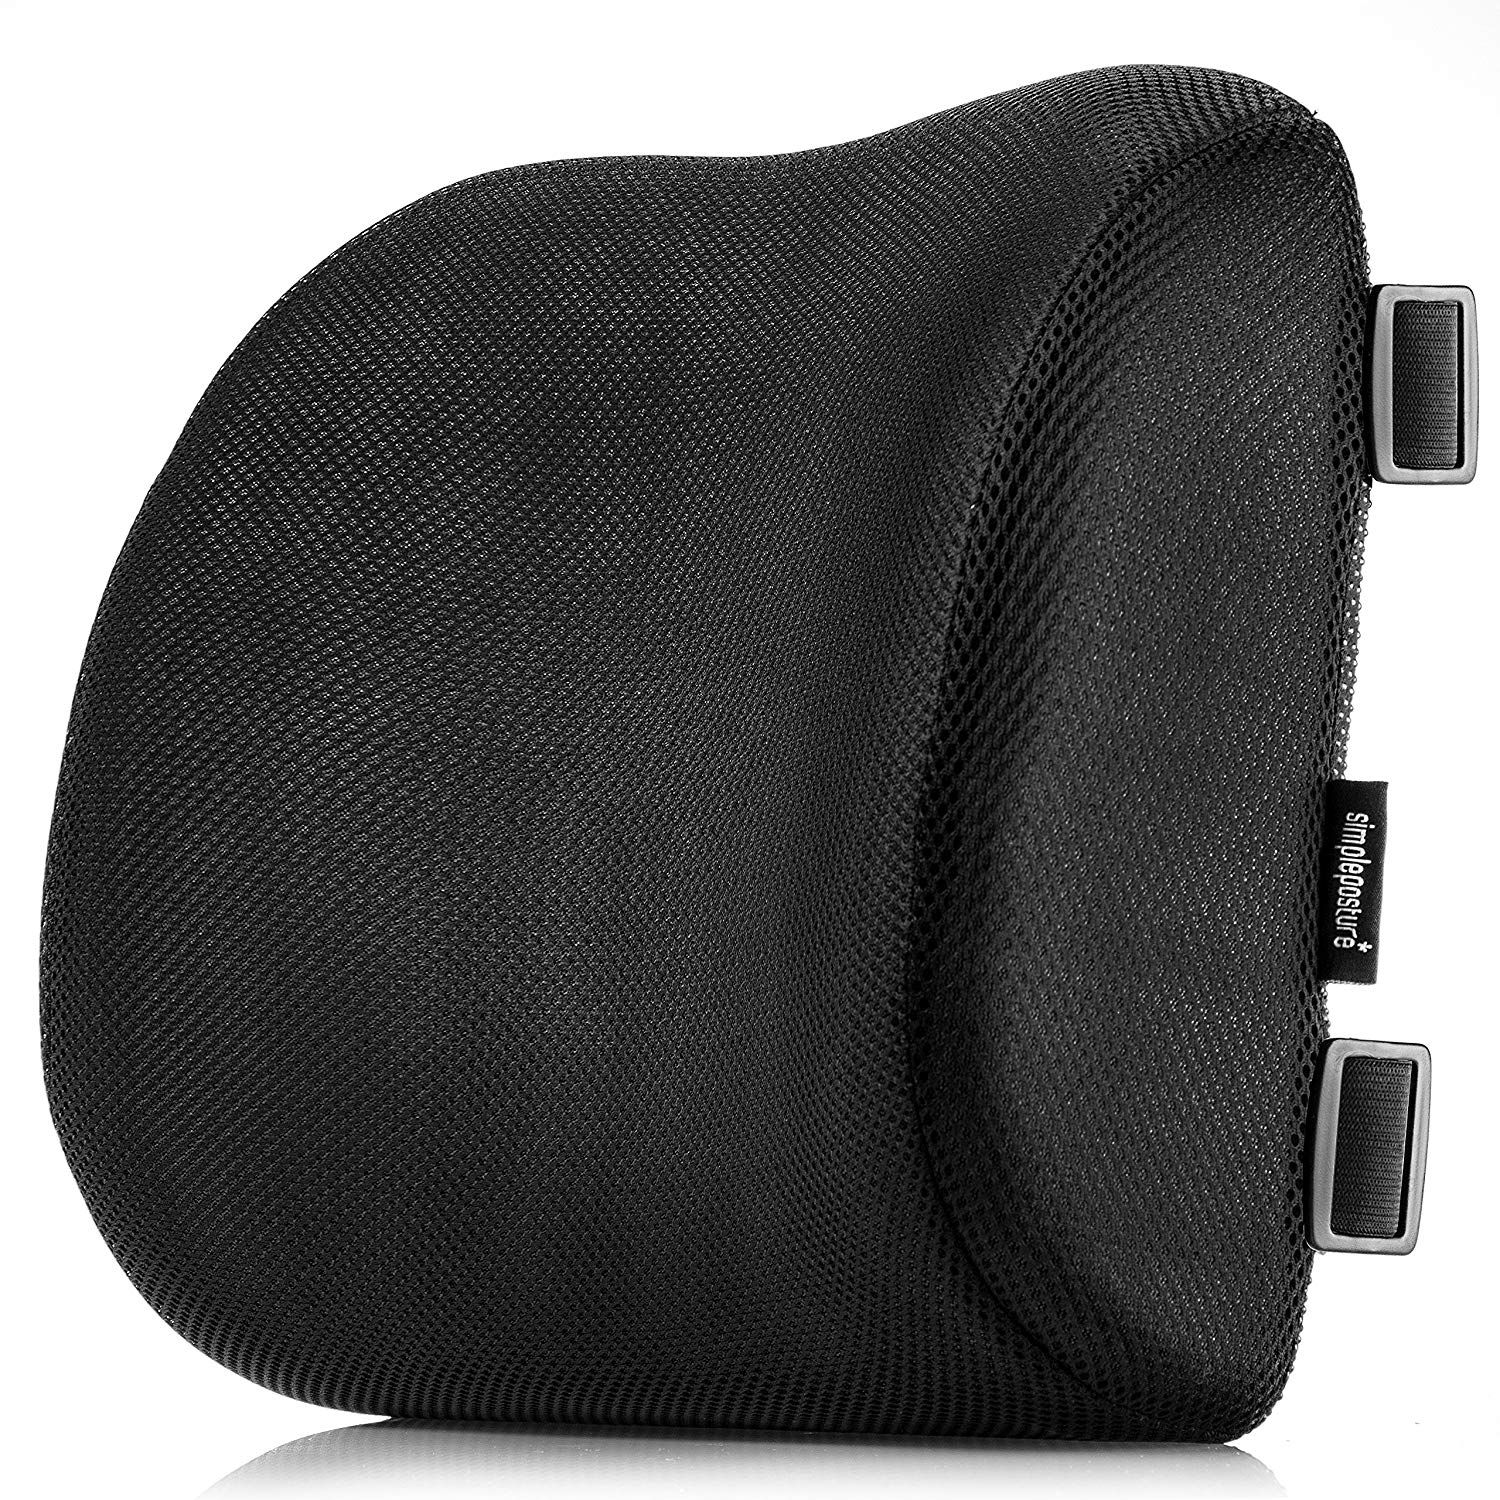 Lumbar Pillow Top Brands And Buying Guide For 2019